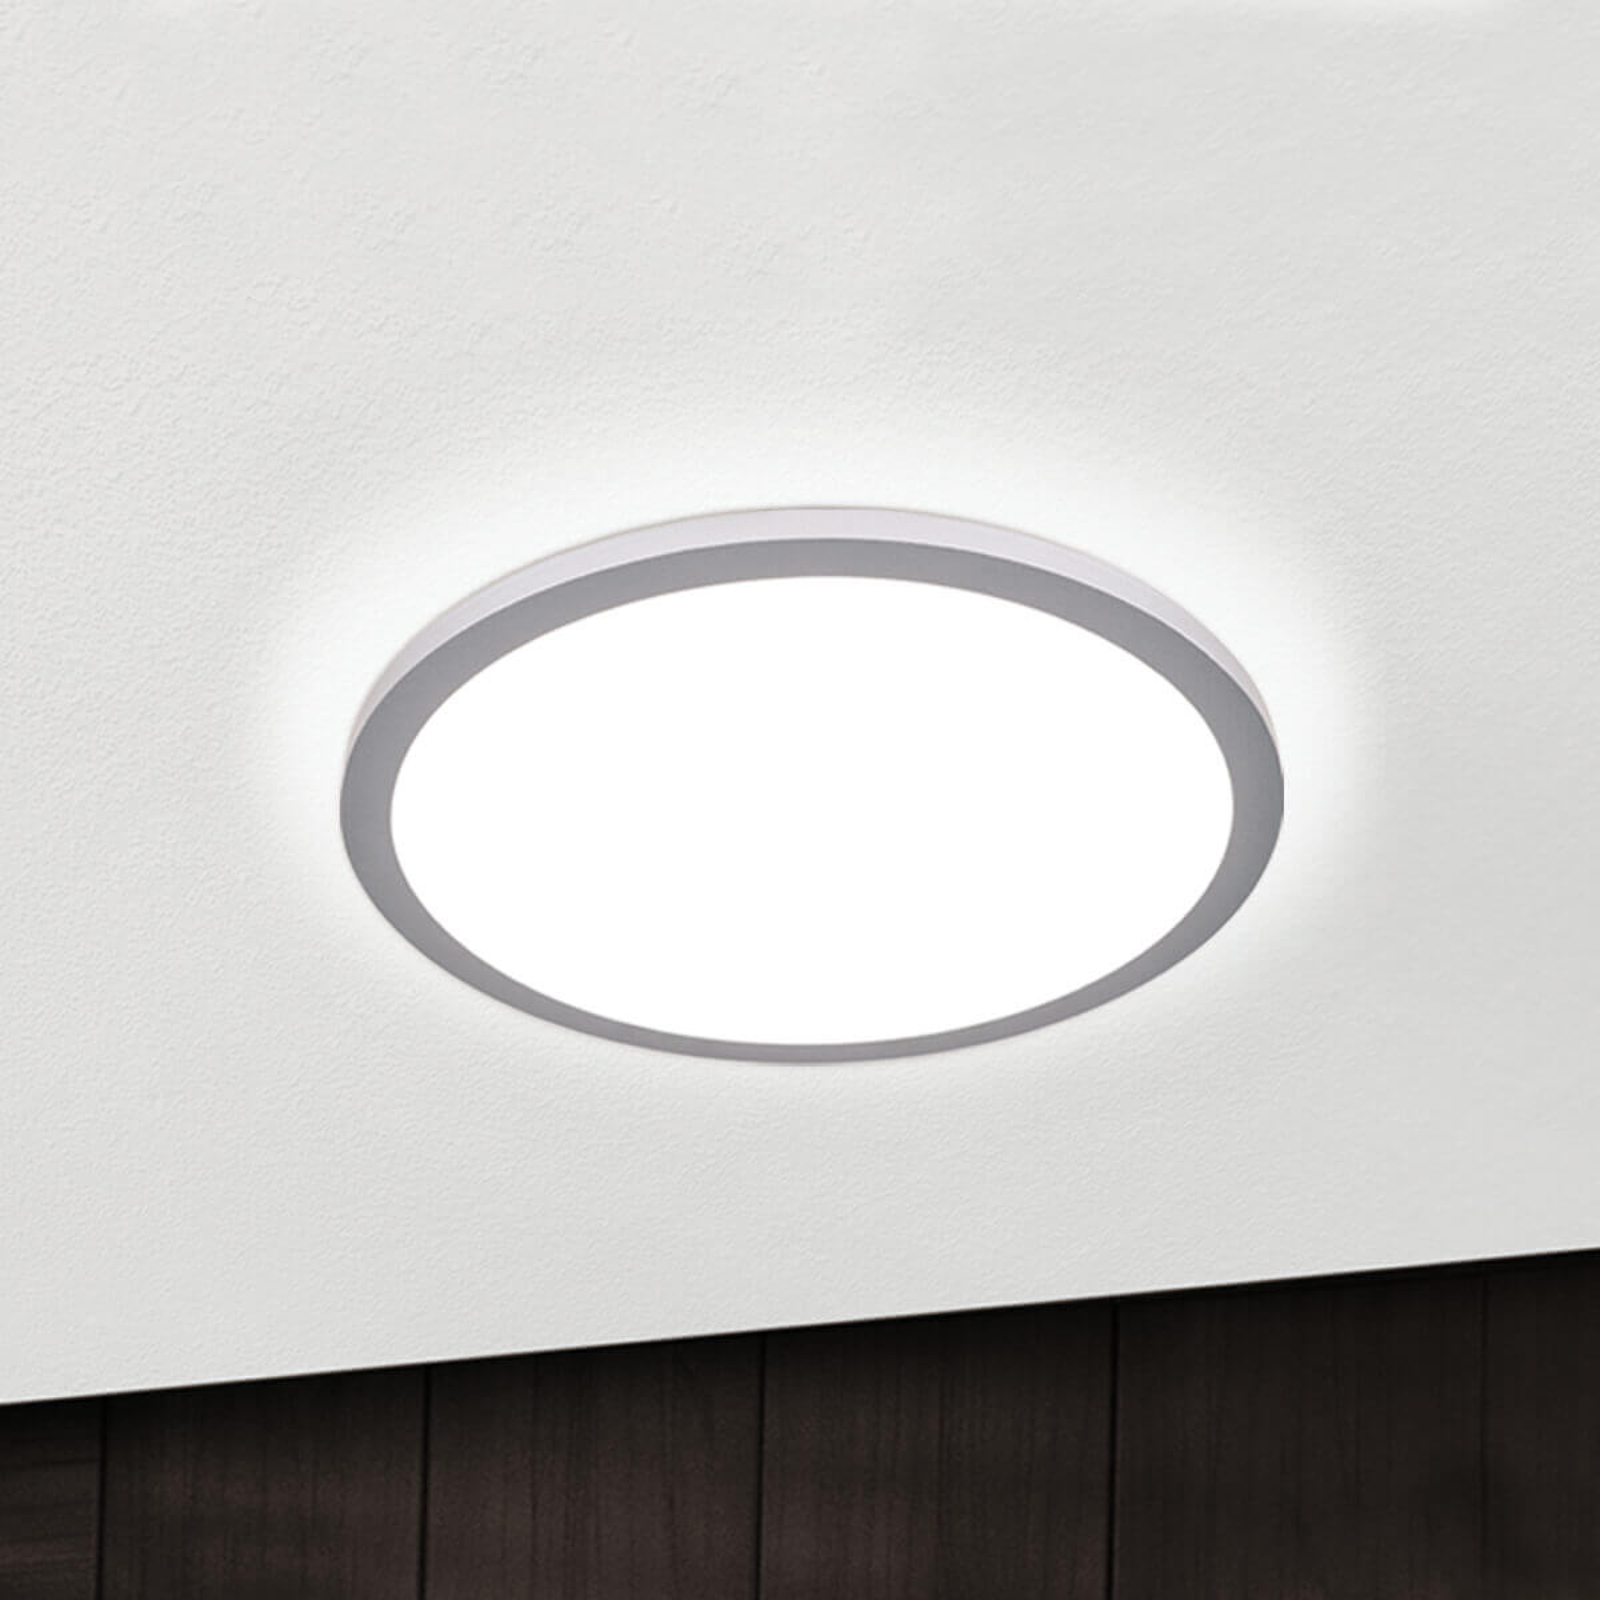 Acquista Plafoniera LED Aria color titanio, dimmerabile